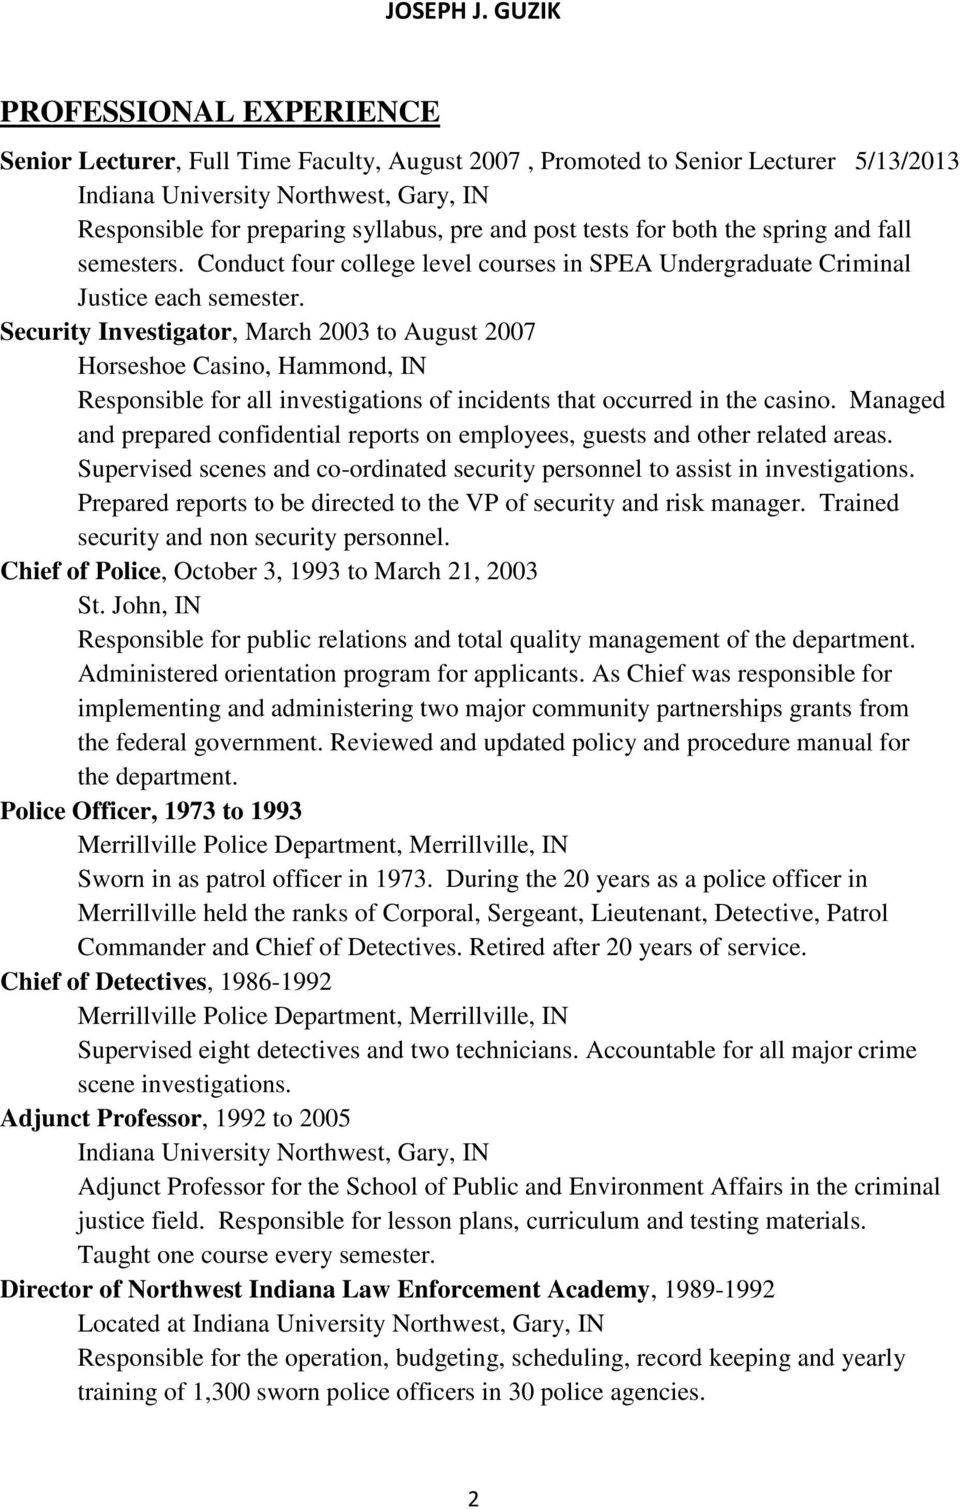 Security Investigator, March 2003 to August 2007 Horseshoe Casino, Hammond, IN Responsible for all investigations of incidents that occurred in the casino.